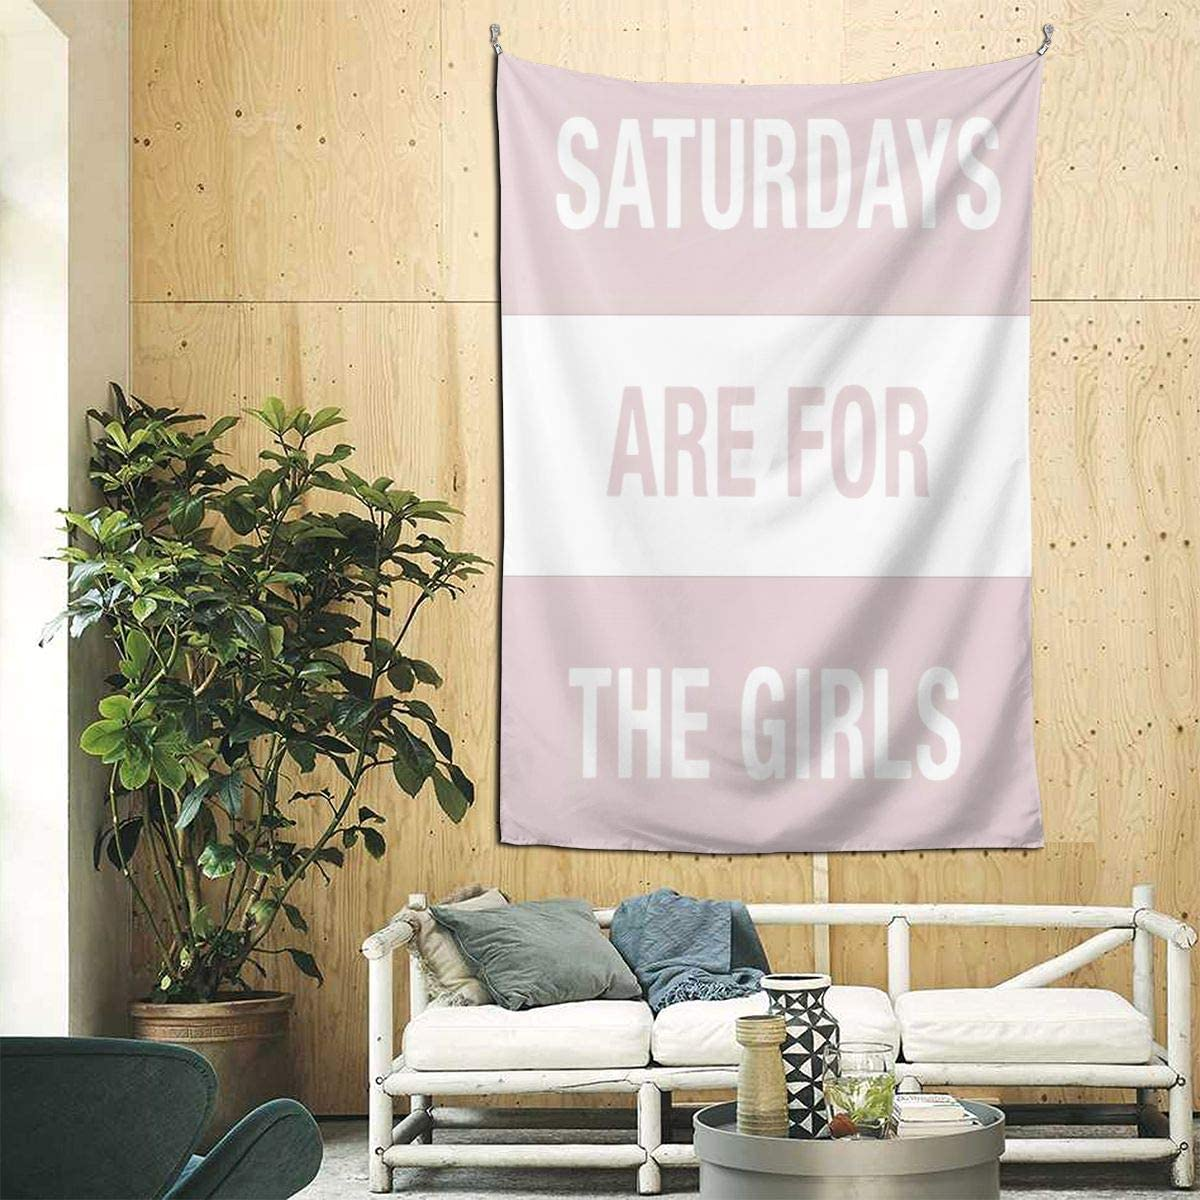 Aopit Labs Wall Tapestry Saturdays are for The Girls Pink Home Decor Extra Large Tablecloths for Bedroom Living Room Dorm Room Music Party Banner